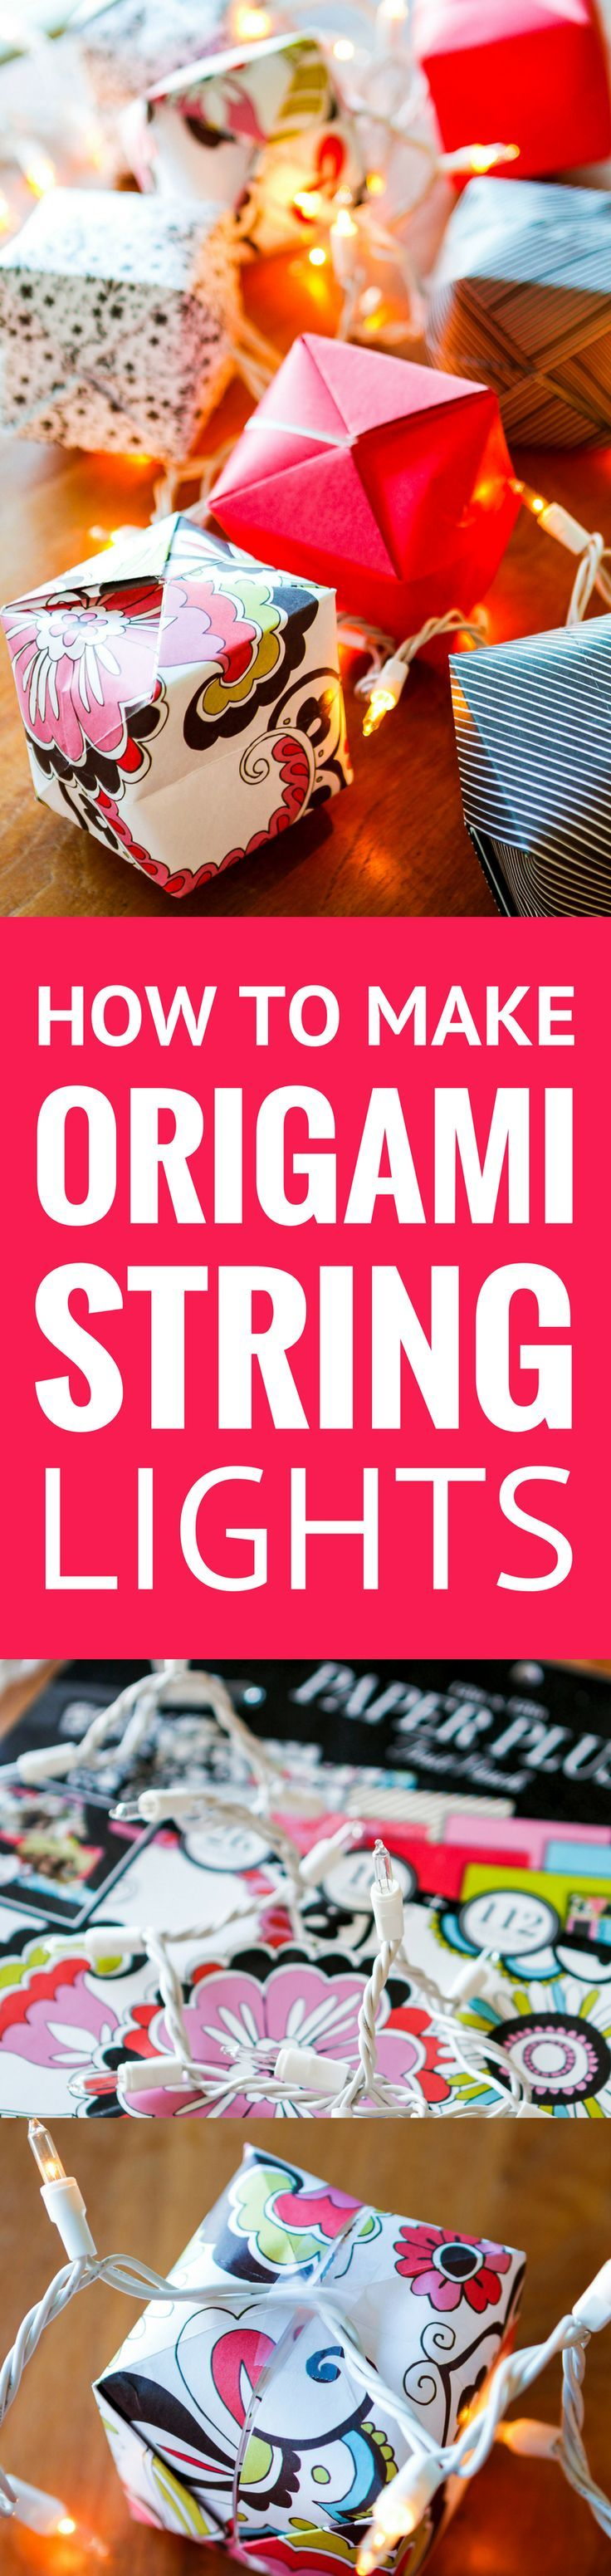 How To Make Origami Lights -- transform the classic Chinese water bomb into origami light covers to create these gorgeous origami string lights, a beautiful and festive lighting option! Not just for Chinese New Year, they're a great option for indoor or outdoor parties, weddings, baby showers, Christmas, you name it... | origami lights diy | origami lights shade | origami lights covers | origami lights awesome | origami lights awesome #chinesenewyear #papercrafts #origami #paperart